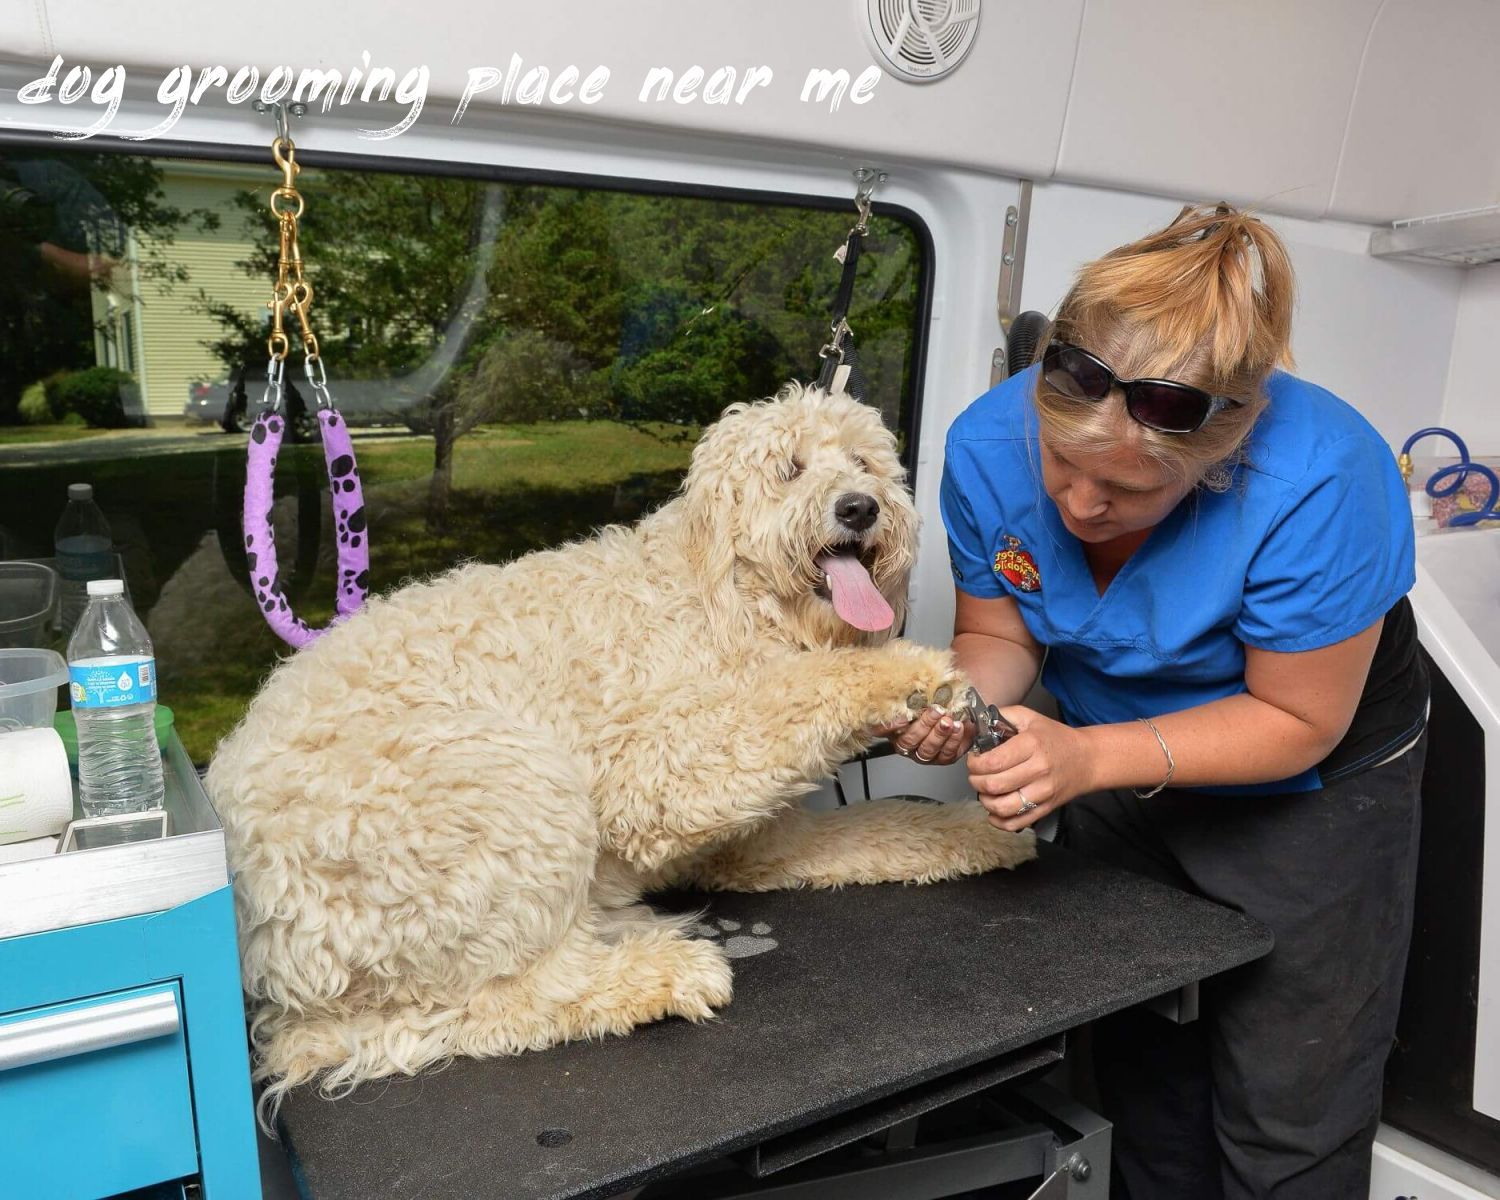 dog grooming place near me Buyer Guide